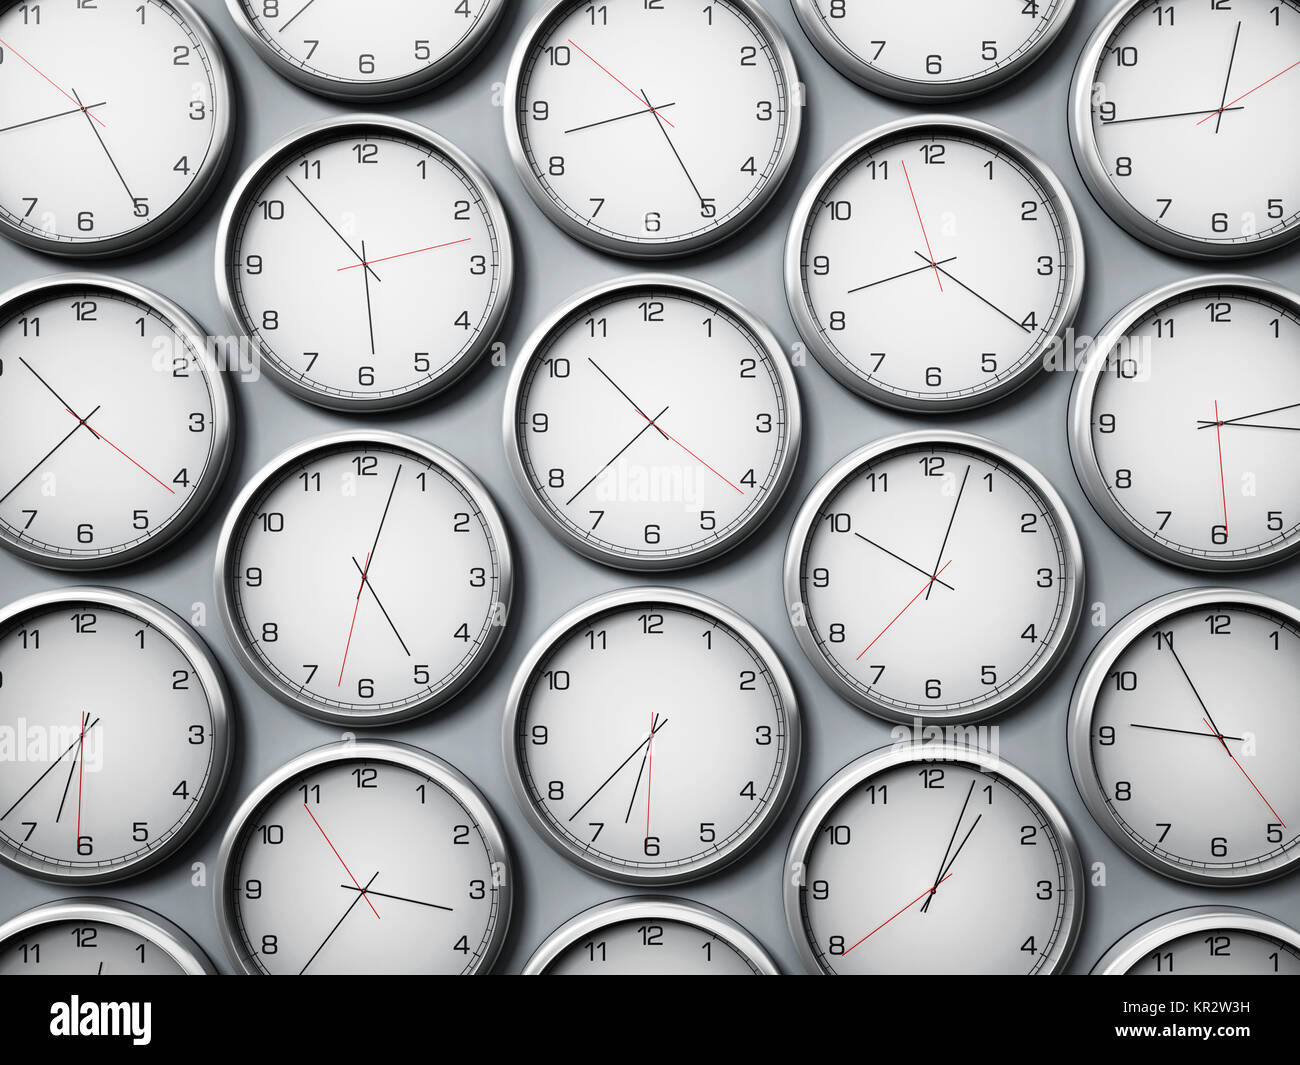 Modern wall clocks showing different time zones of world cities 3d modern wall clocks showing different time zones of world cities 3d illustration gumiabroncs Gallery